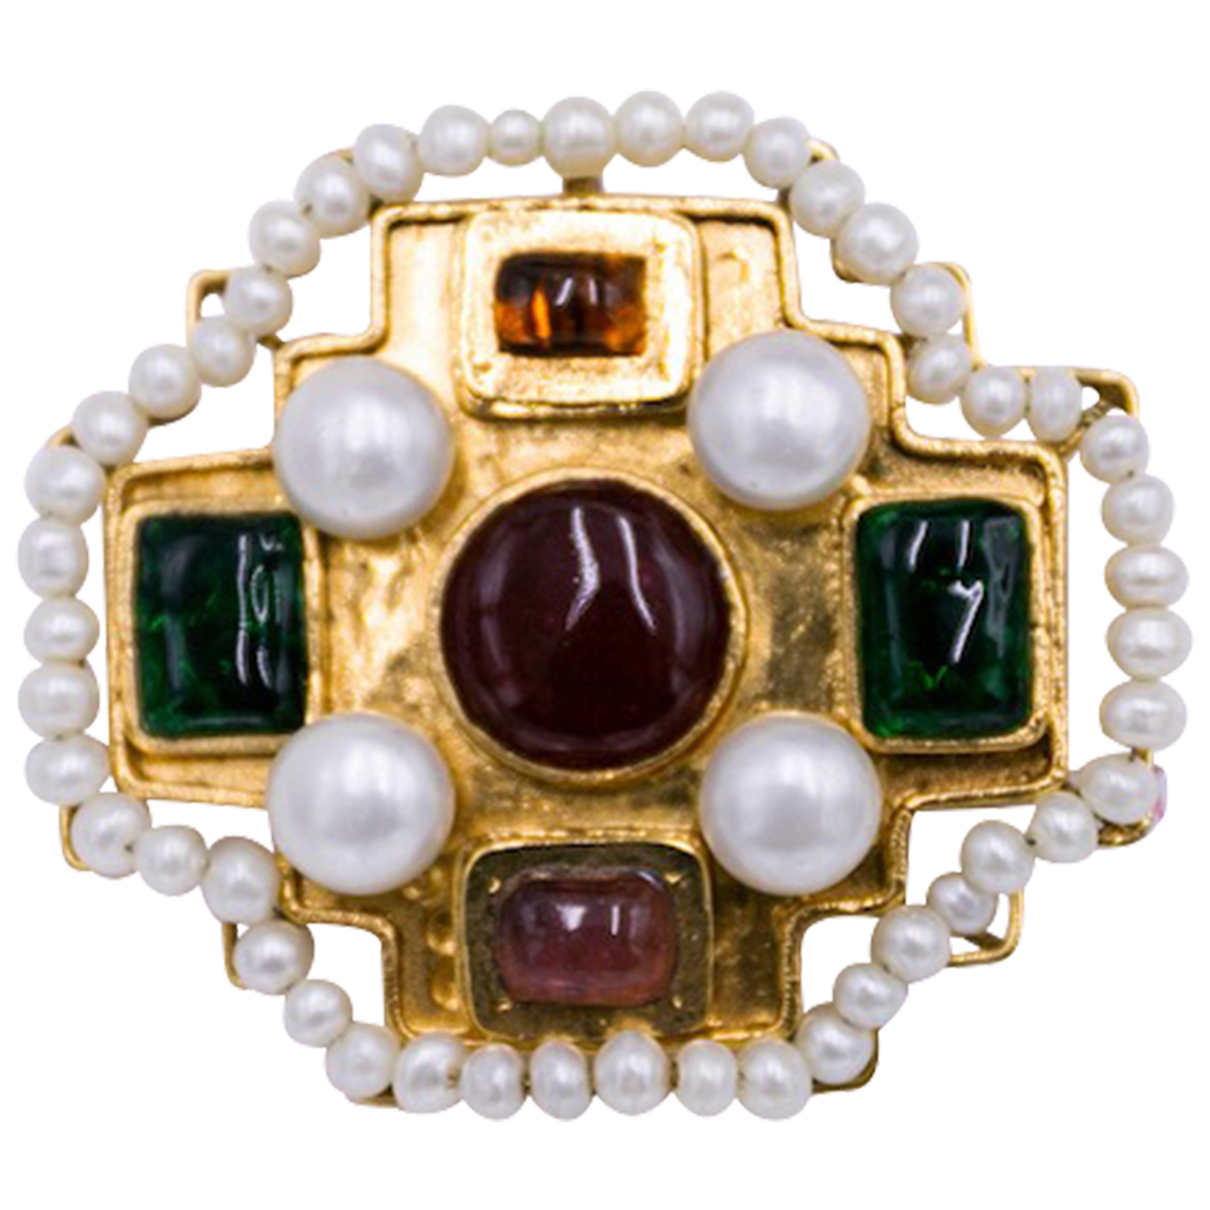 Broche Baroque en Metal Multicolor Chanel